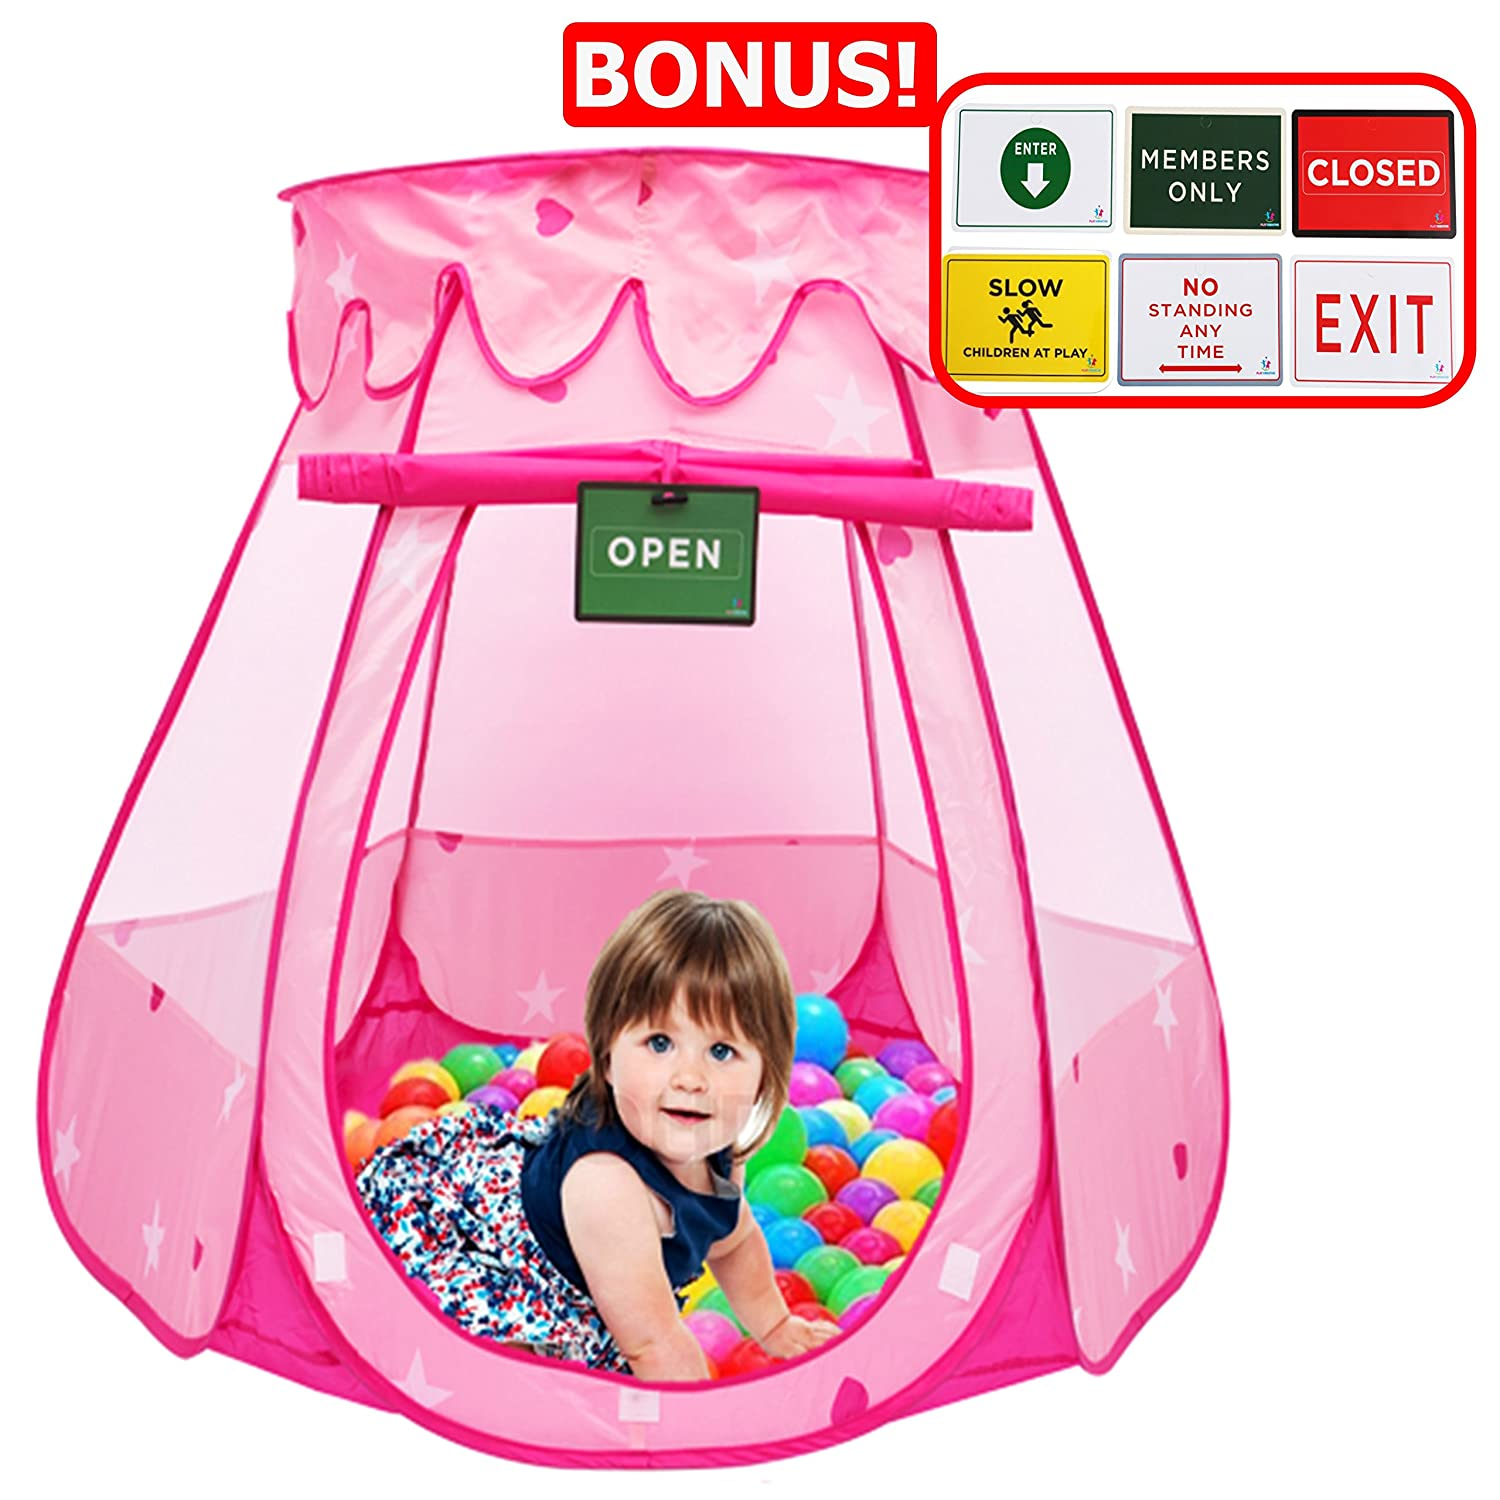 Play Kreative Pink Princess POP UP Tent with Carry Case. Girls Pink Playhouse with Mesh Siding Stars and Red Hearts for Indoor Outdoor Kids Playtime Activities – Lovely Birthday Gift for Her